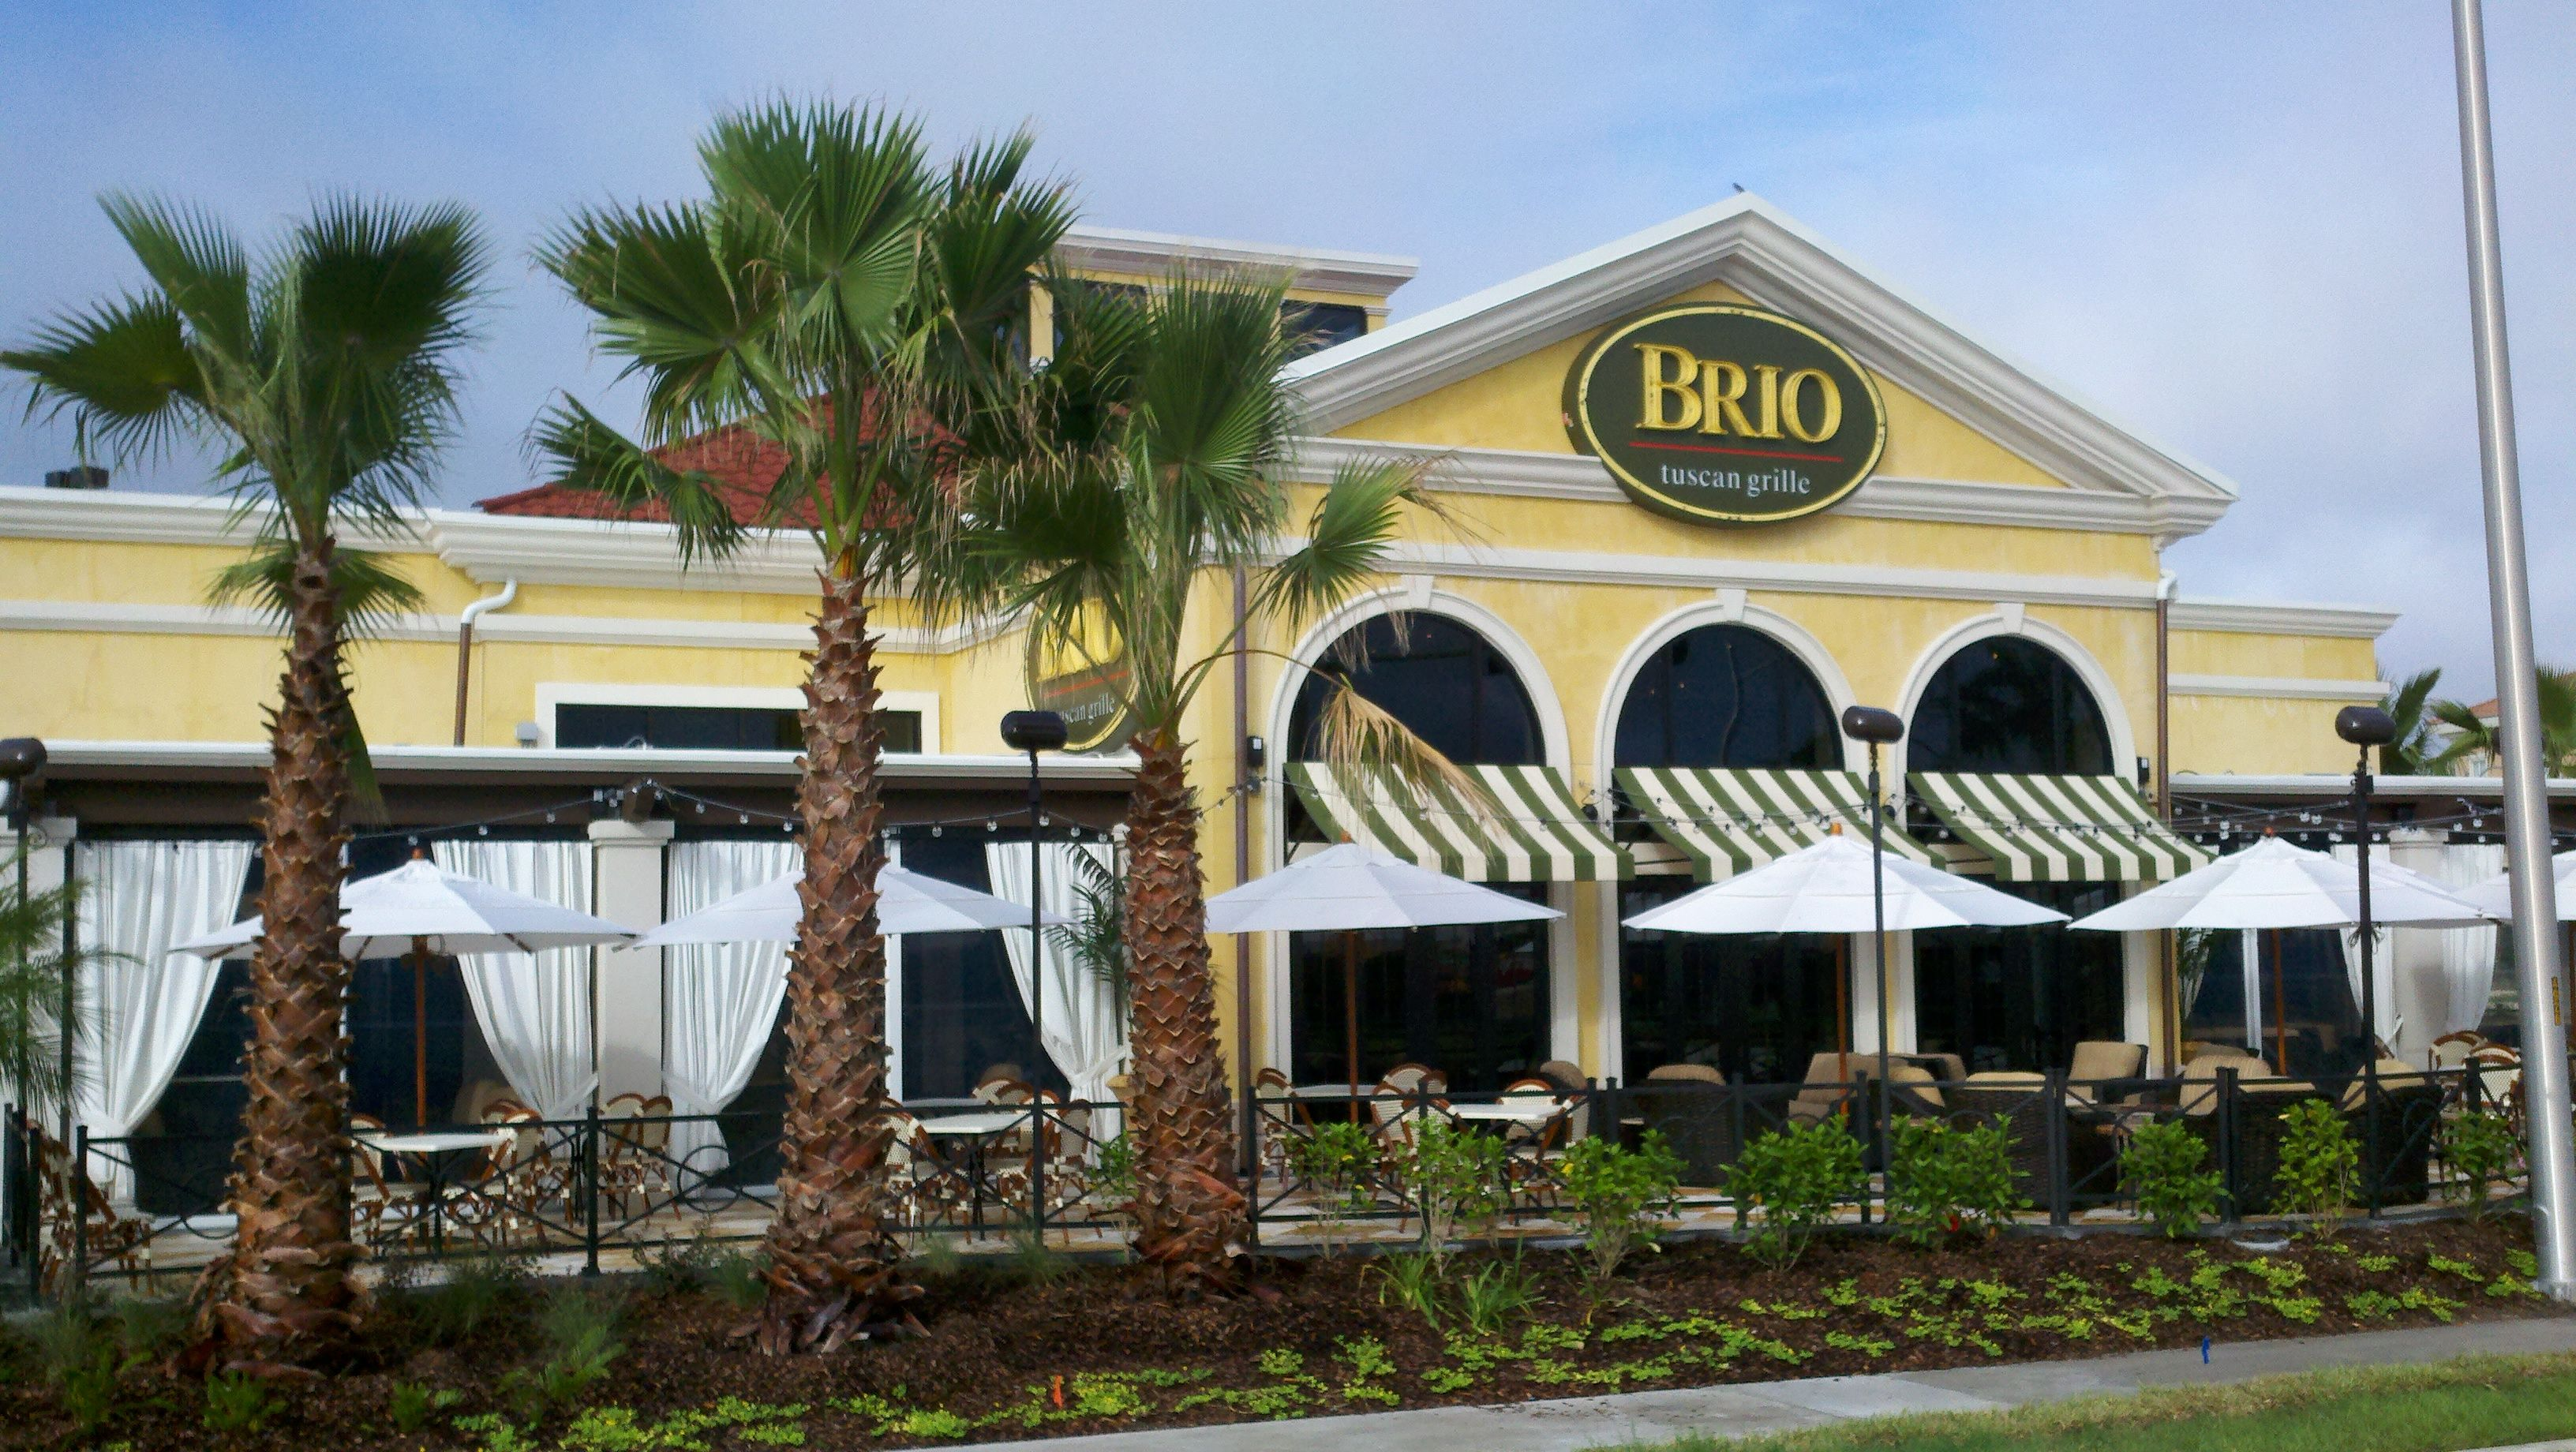 Welcome To Brio Tuscan Grille Italian Restaurant In